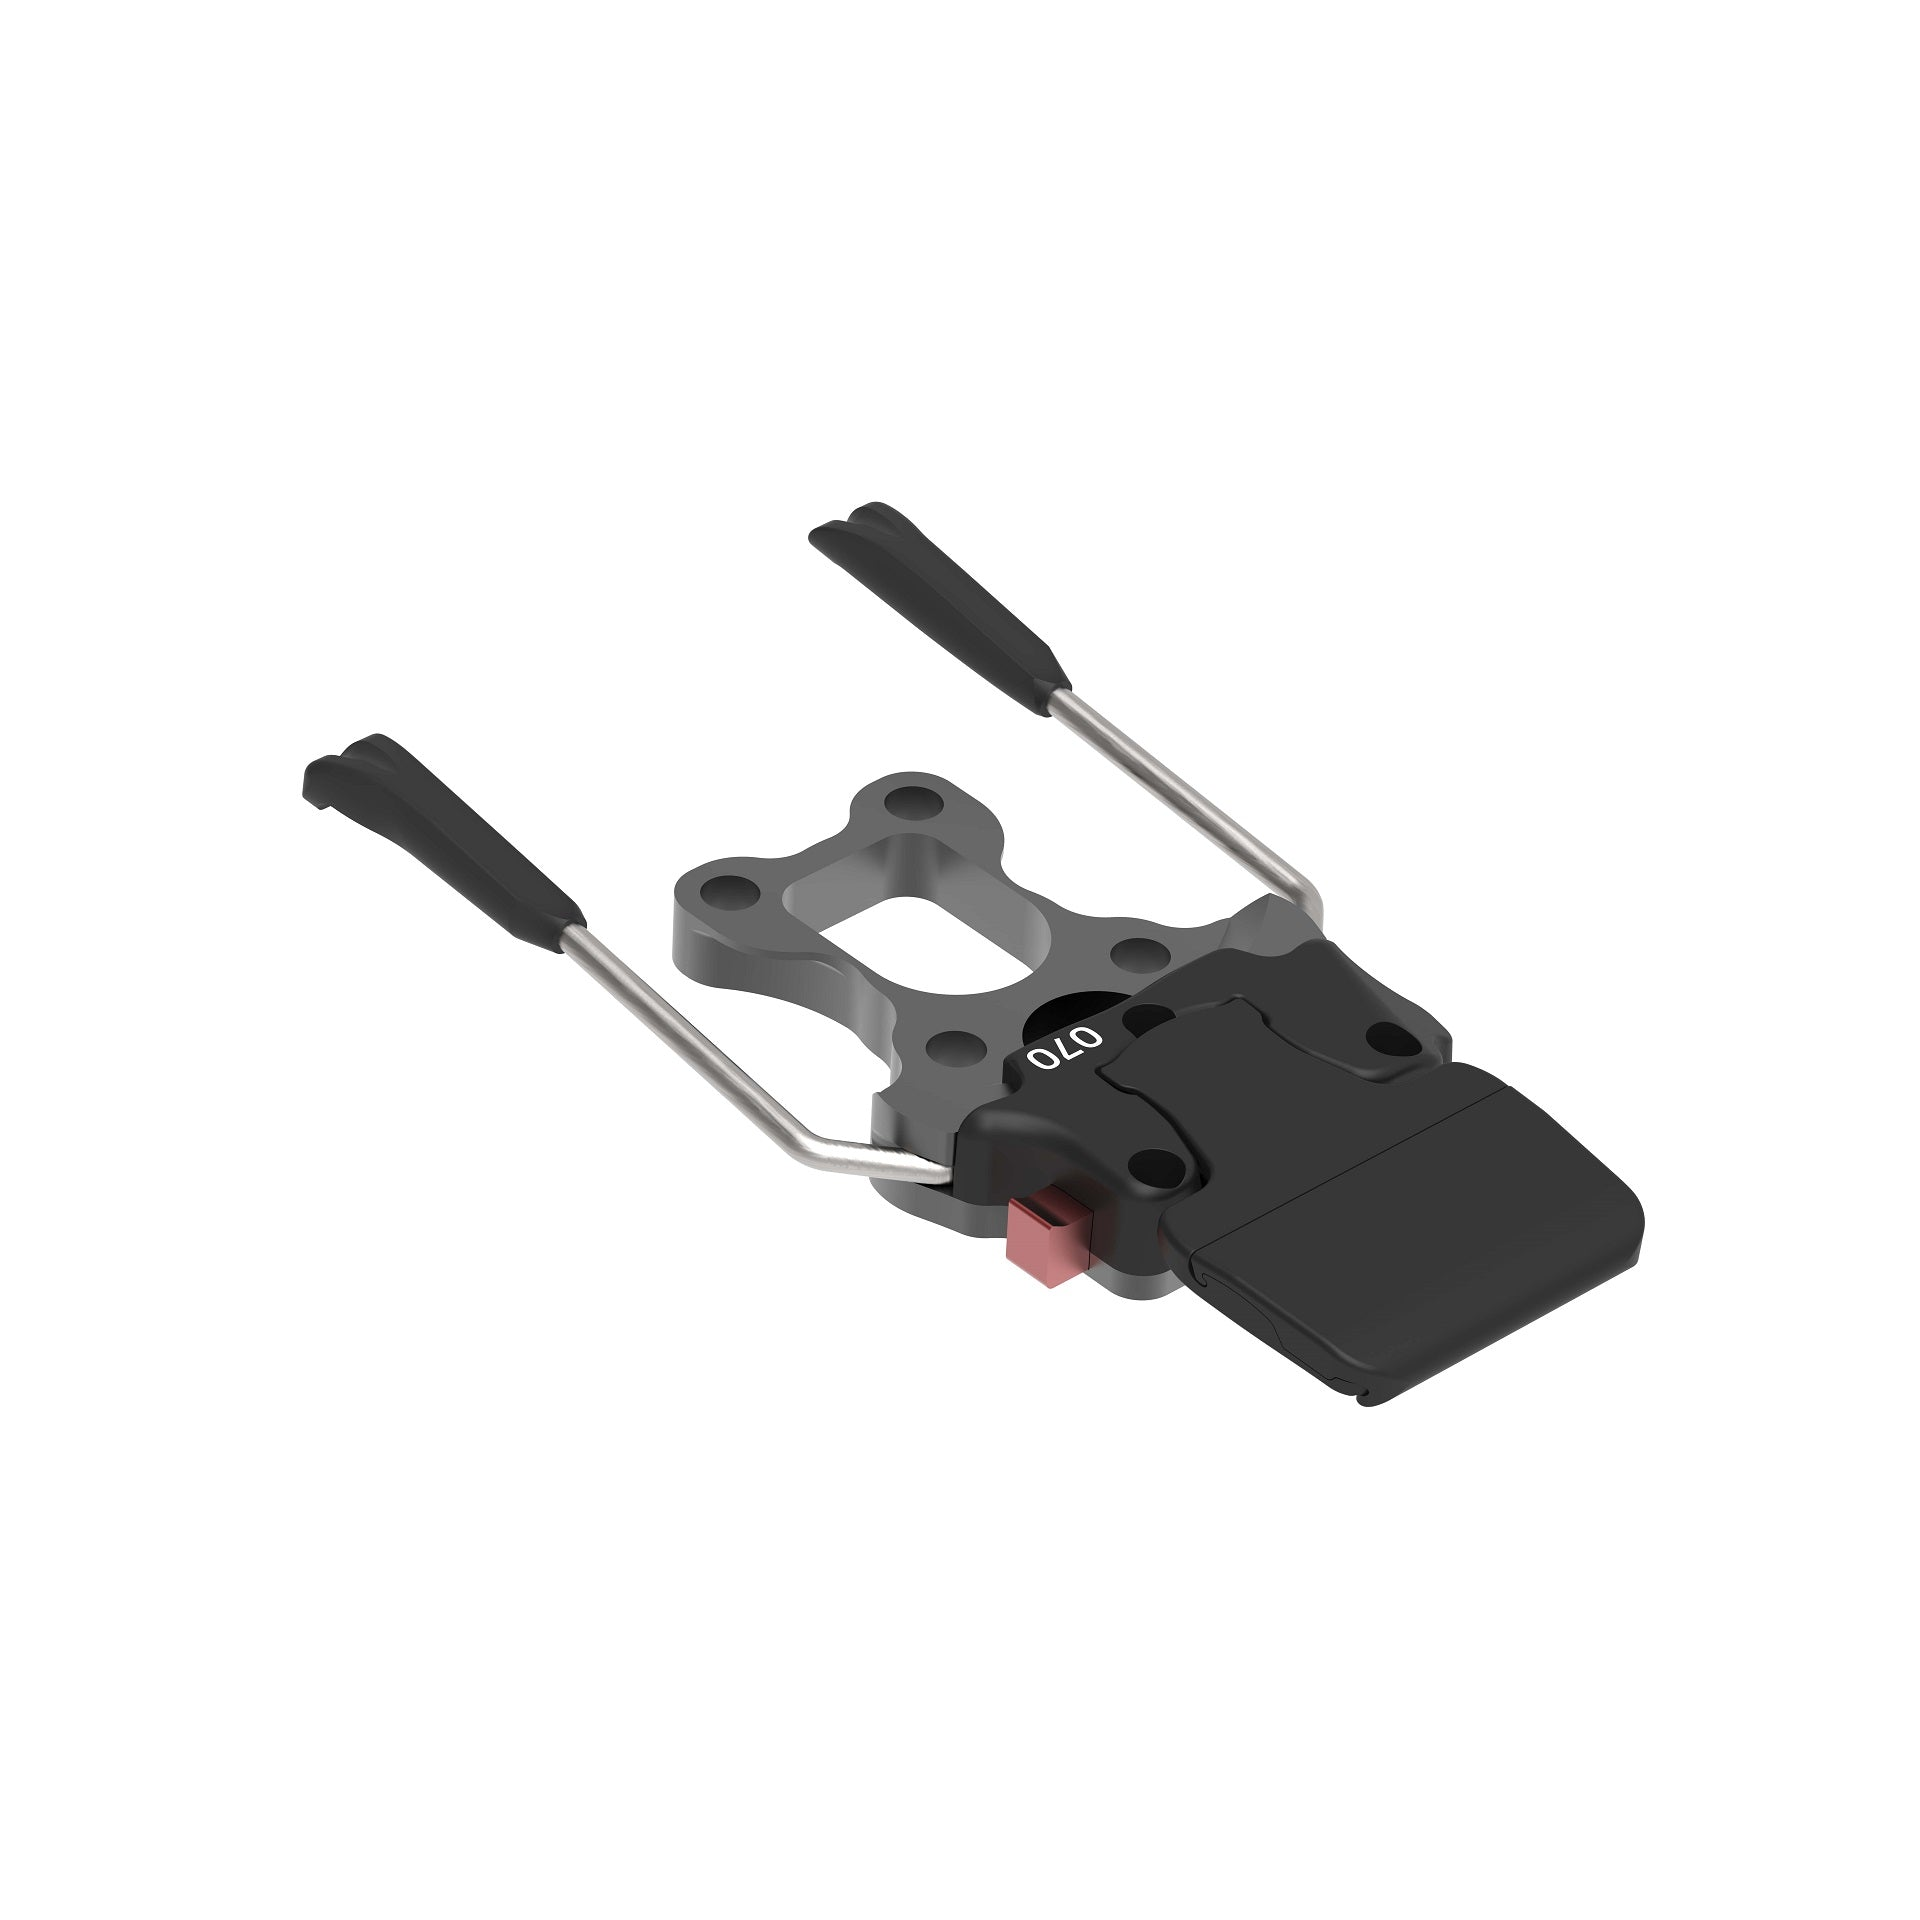 Race Ski Brake, Bindings - Hagan Ski Mountaineering